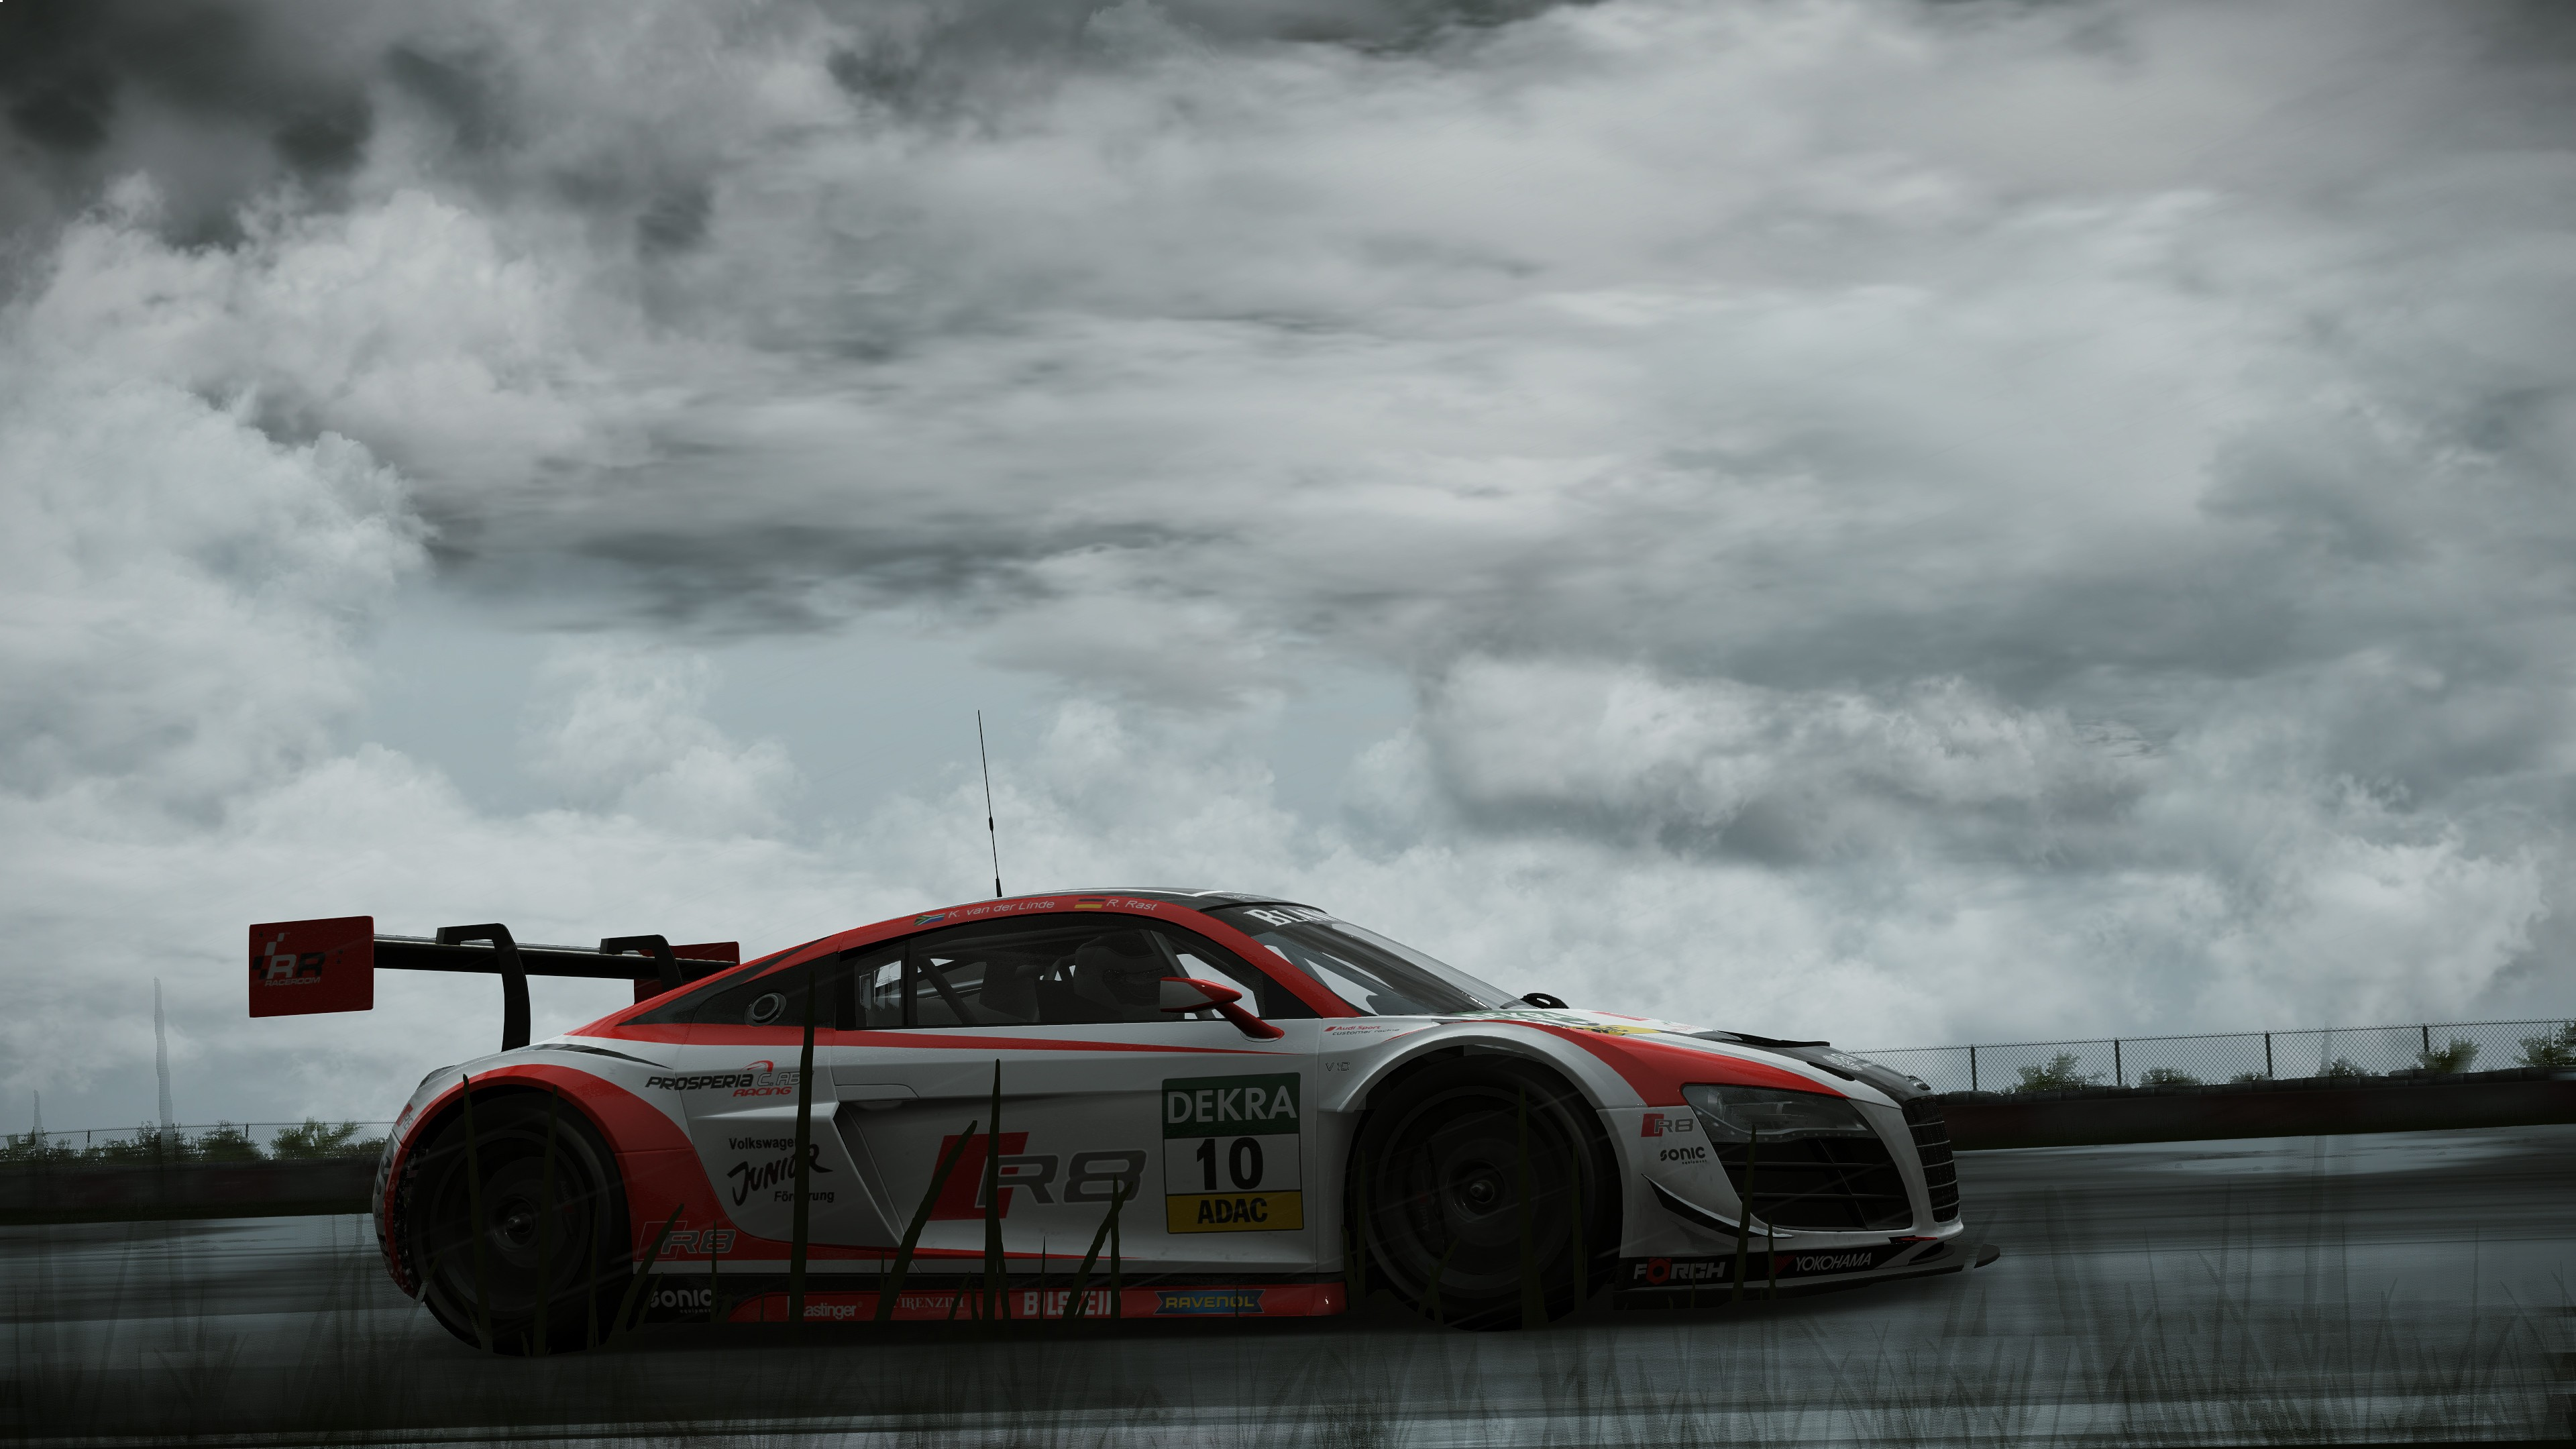 Racing Car Games Hd Wallpaper: Wallpaper Project CARS, Best Games 2015, Best Racing Games